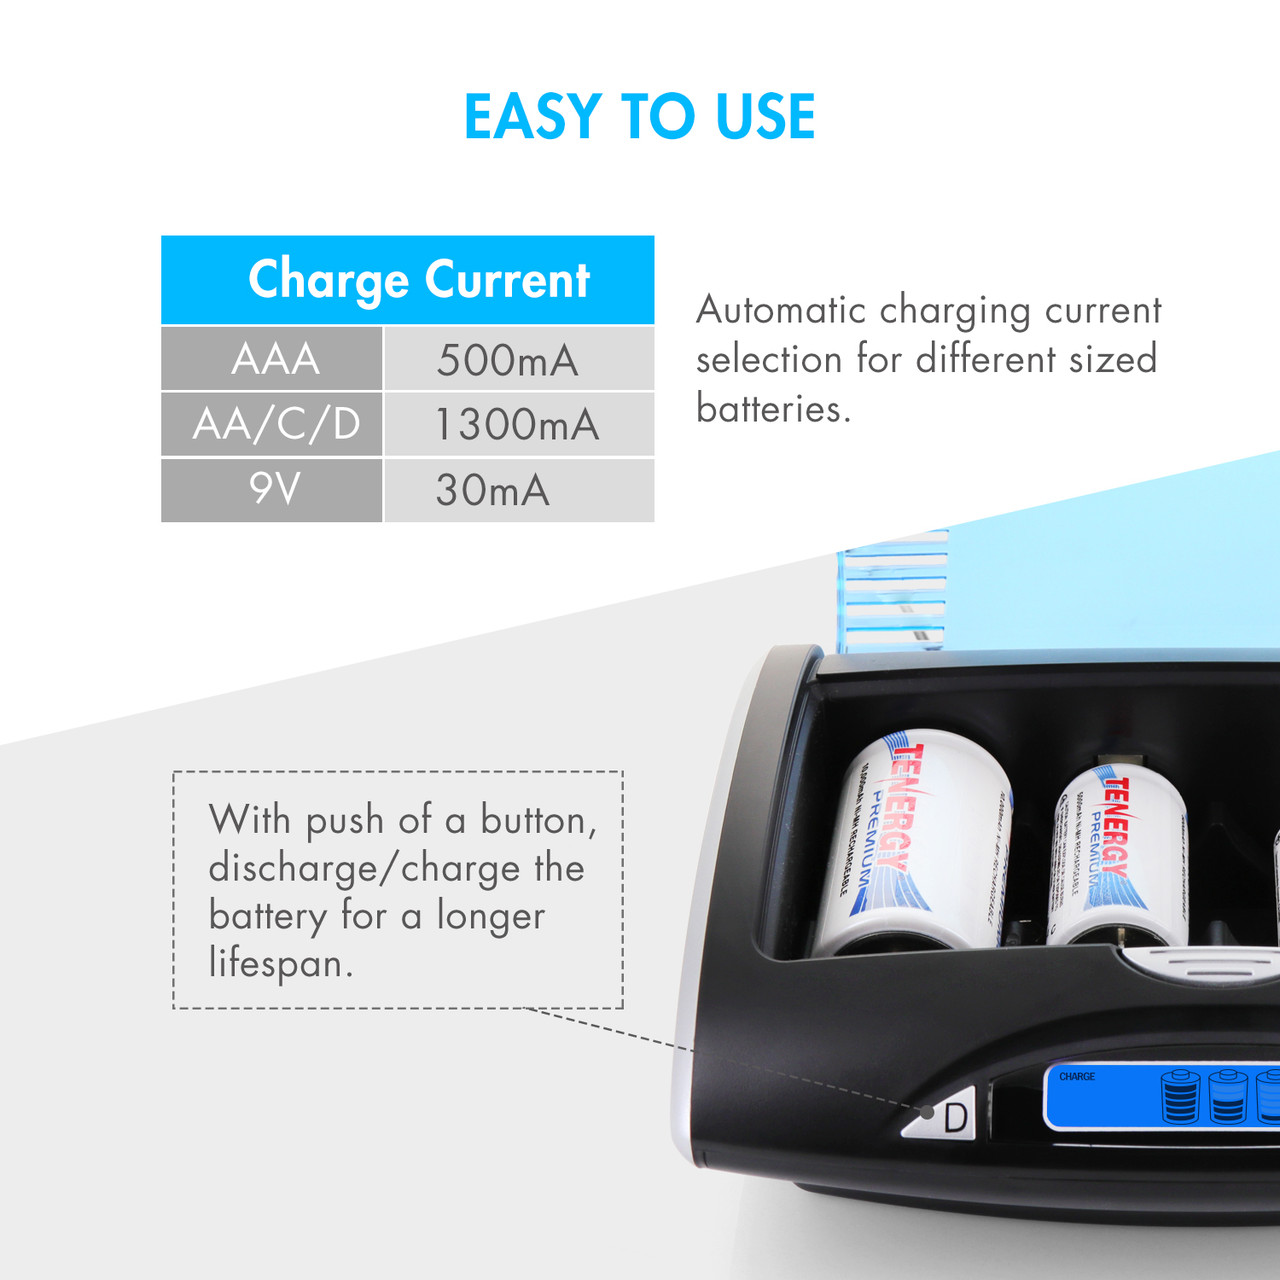 Combo: Tenergy T9688 Universal LCD Battery Charger + 22 NiMH Rechargeable Batteries (8AA/8AAA/2C/2D/2 9V)